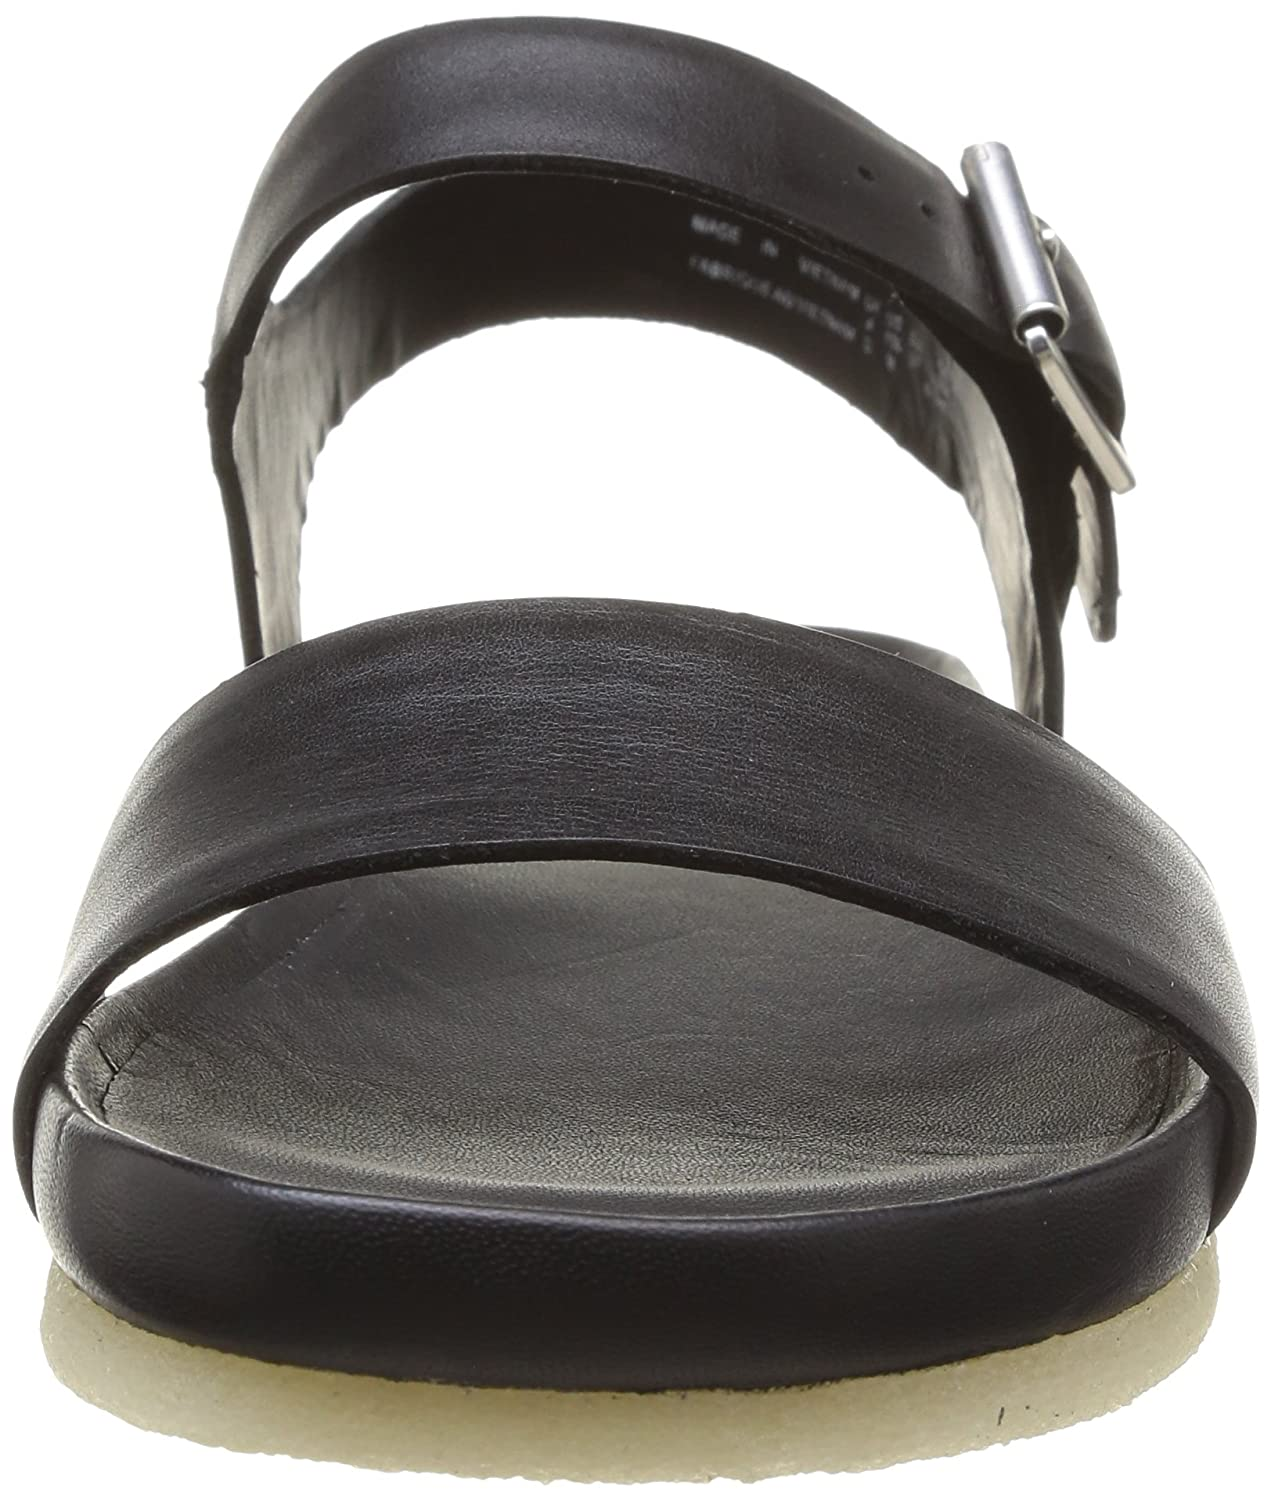 Dusty Soul Leather Y back Sandals